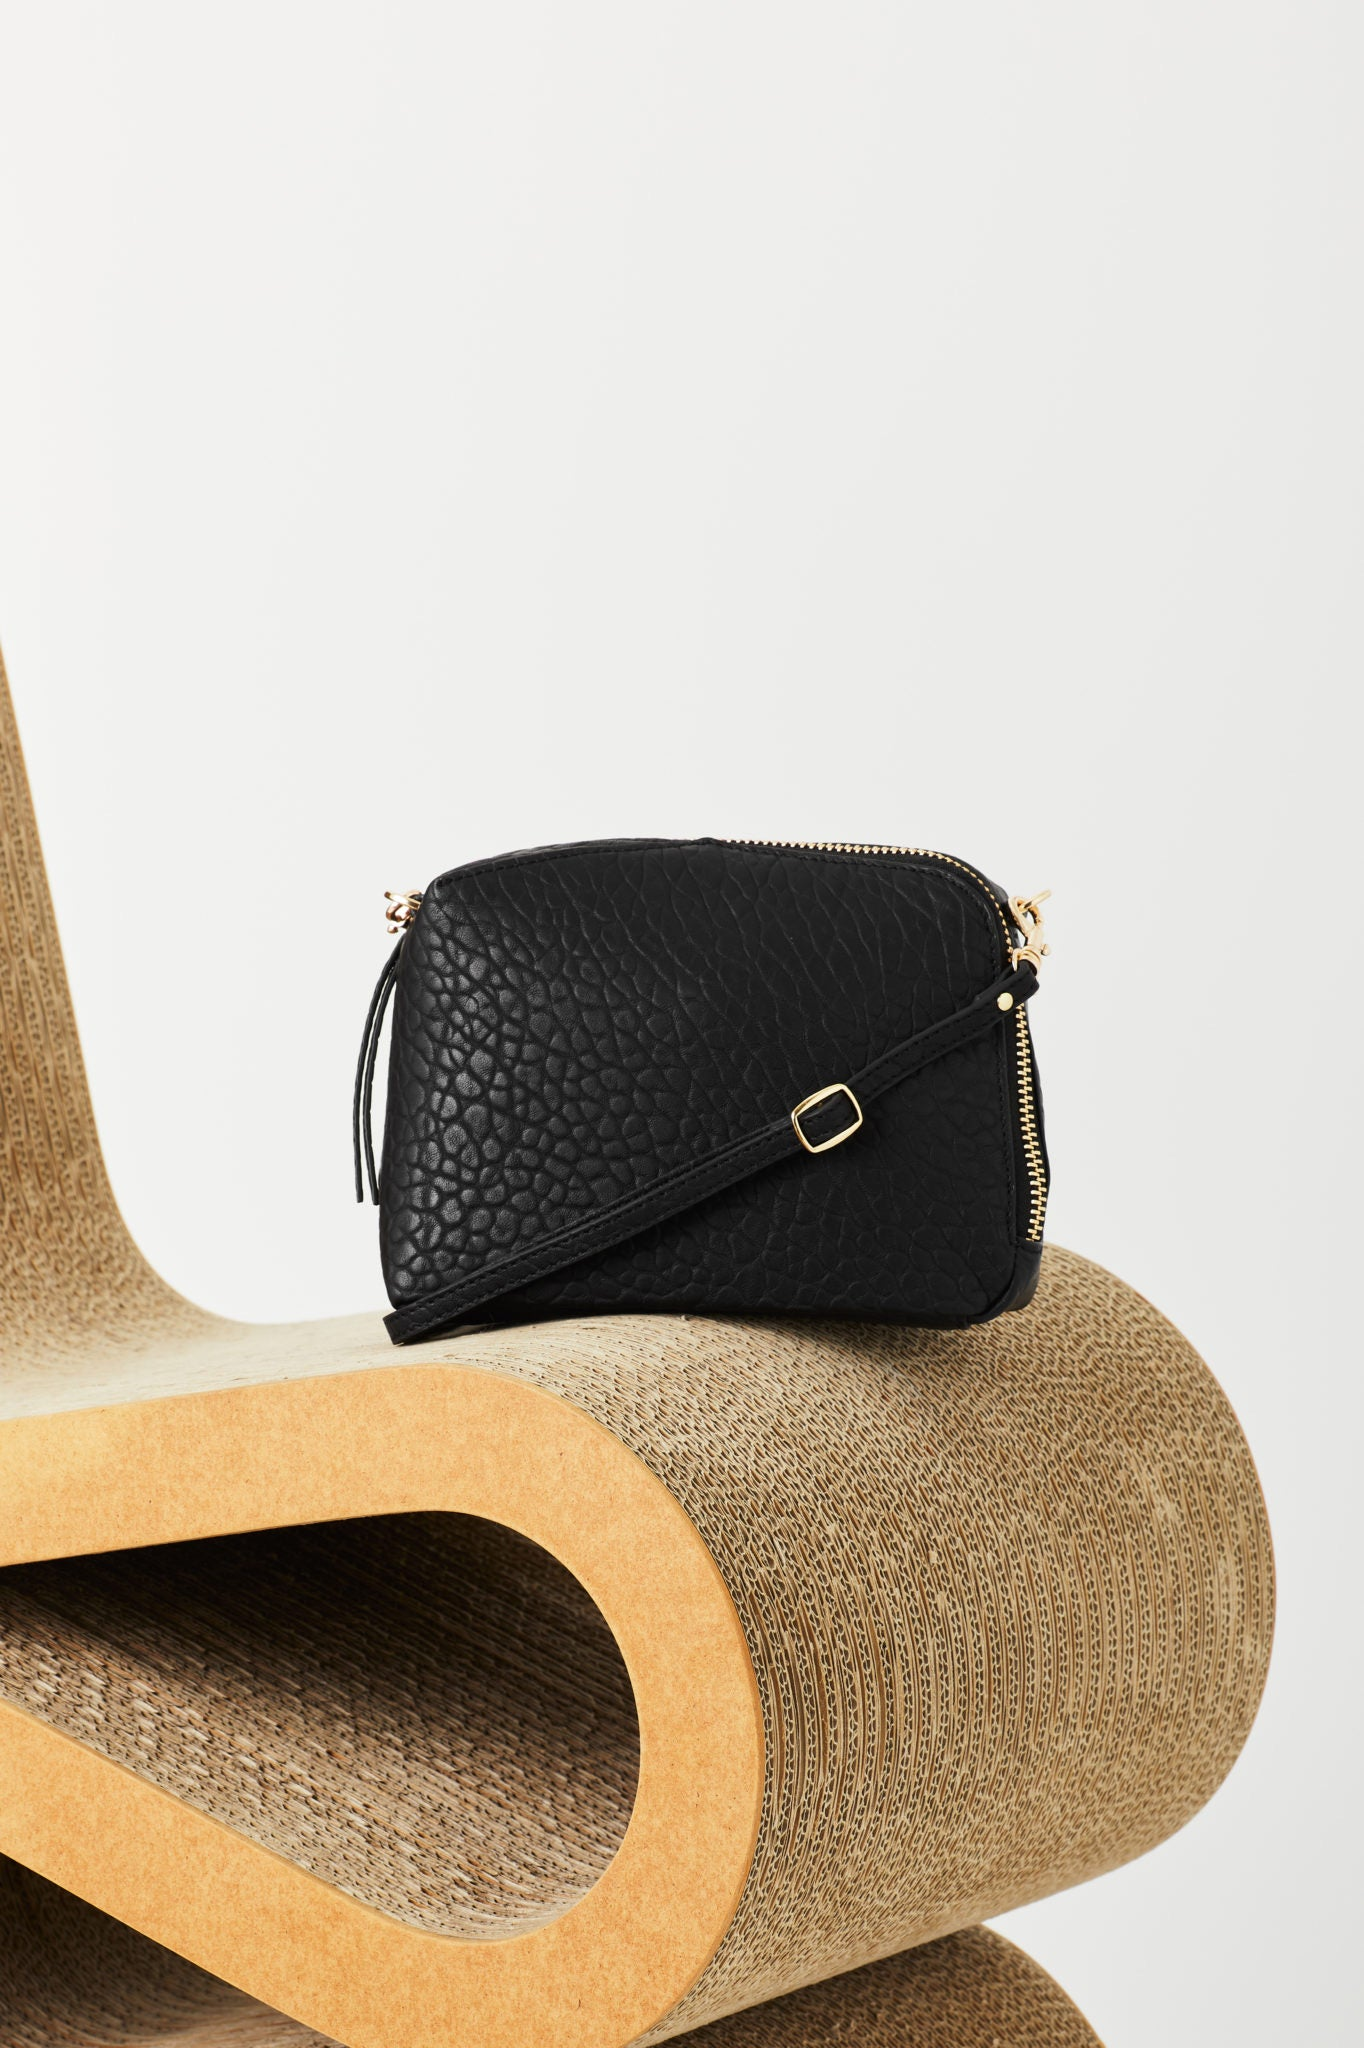 VASH II IZAR Mini CROSSBODY Bag / pebble black